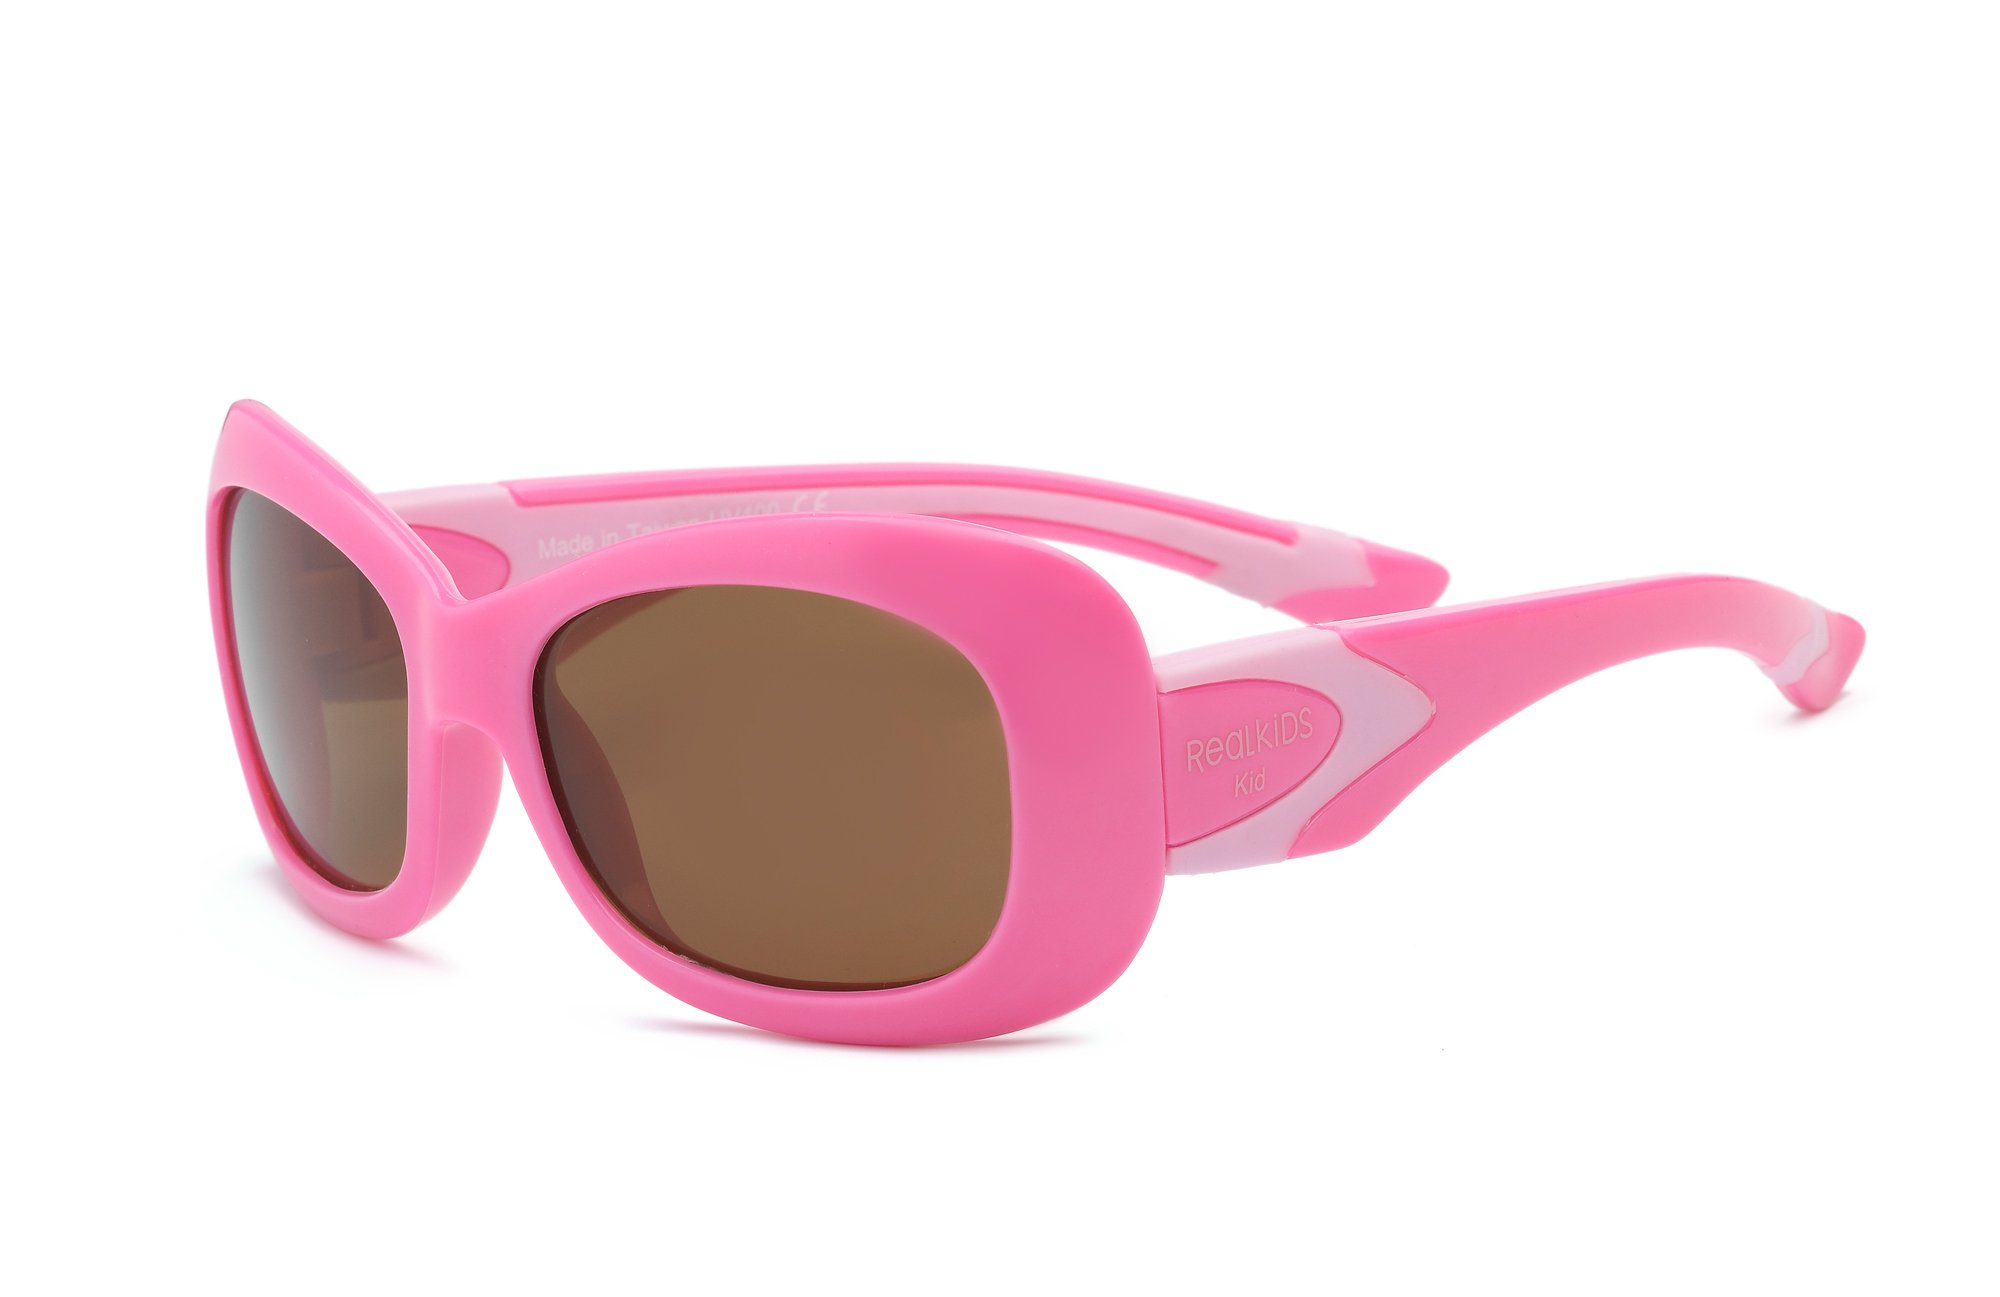 Real Kids Shades Breeze Sunglasses for Kid, Youth - 100% UVA UVB Protection, Polycarbonate Lenses, Unbreakable, Flex Fit, Fashionable Square Frames (Youth 7+, Pink, Polarized)